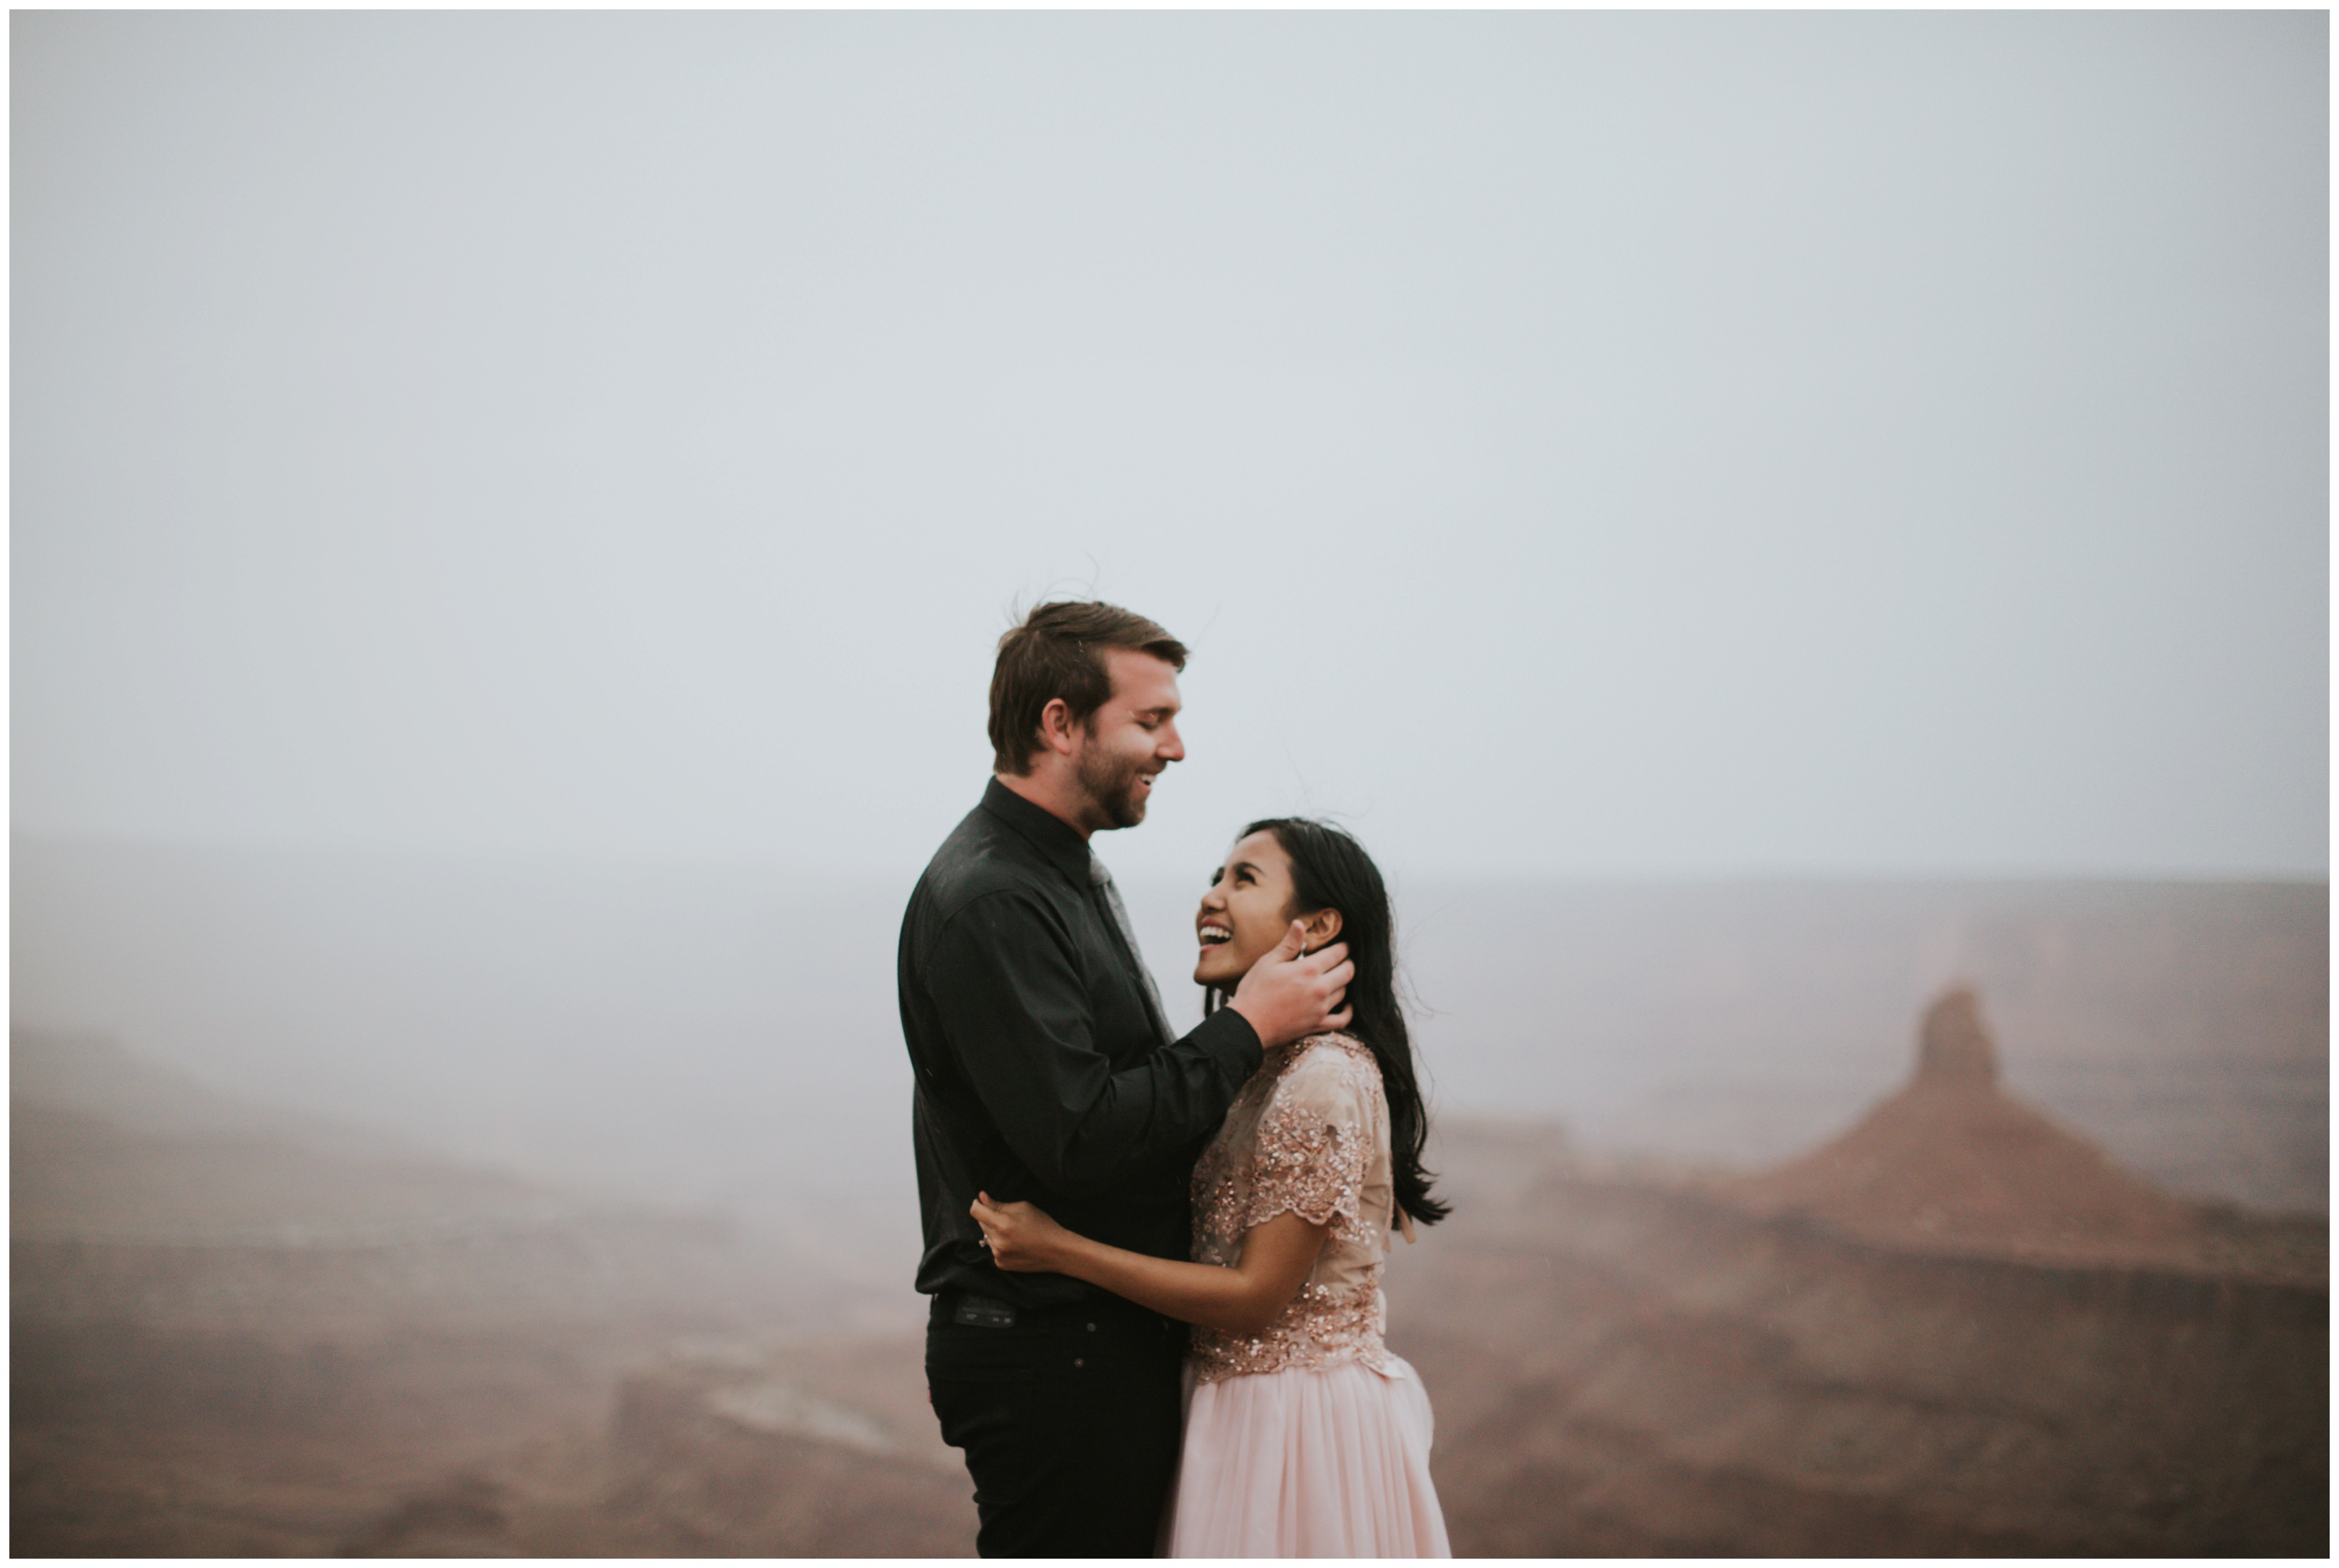 guy playing with girls hair on top of mountain | Elopement Photographer www.riversandroadsphotography.com